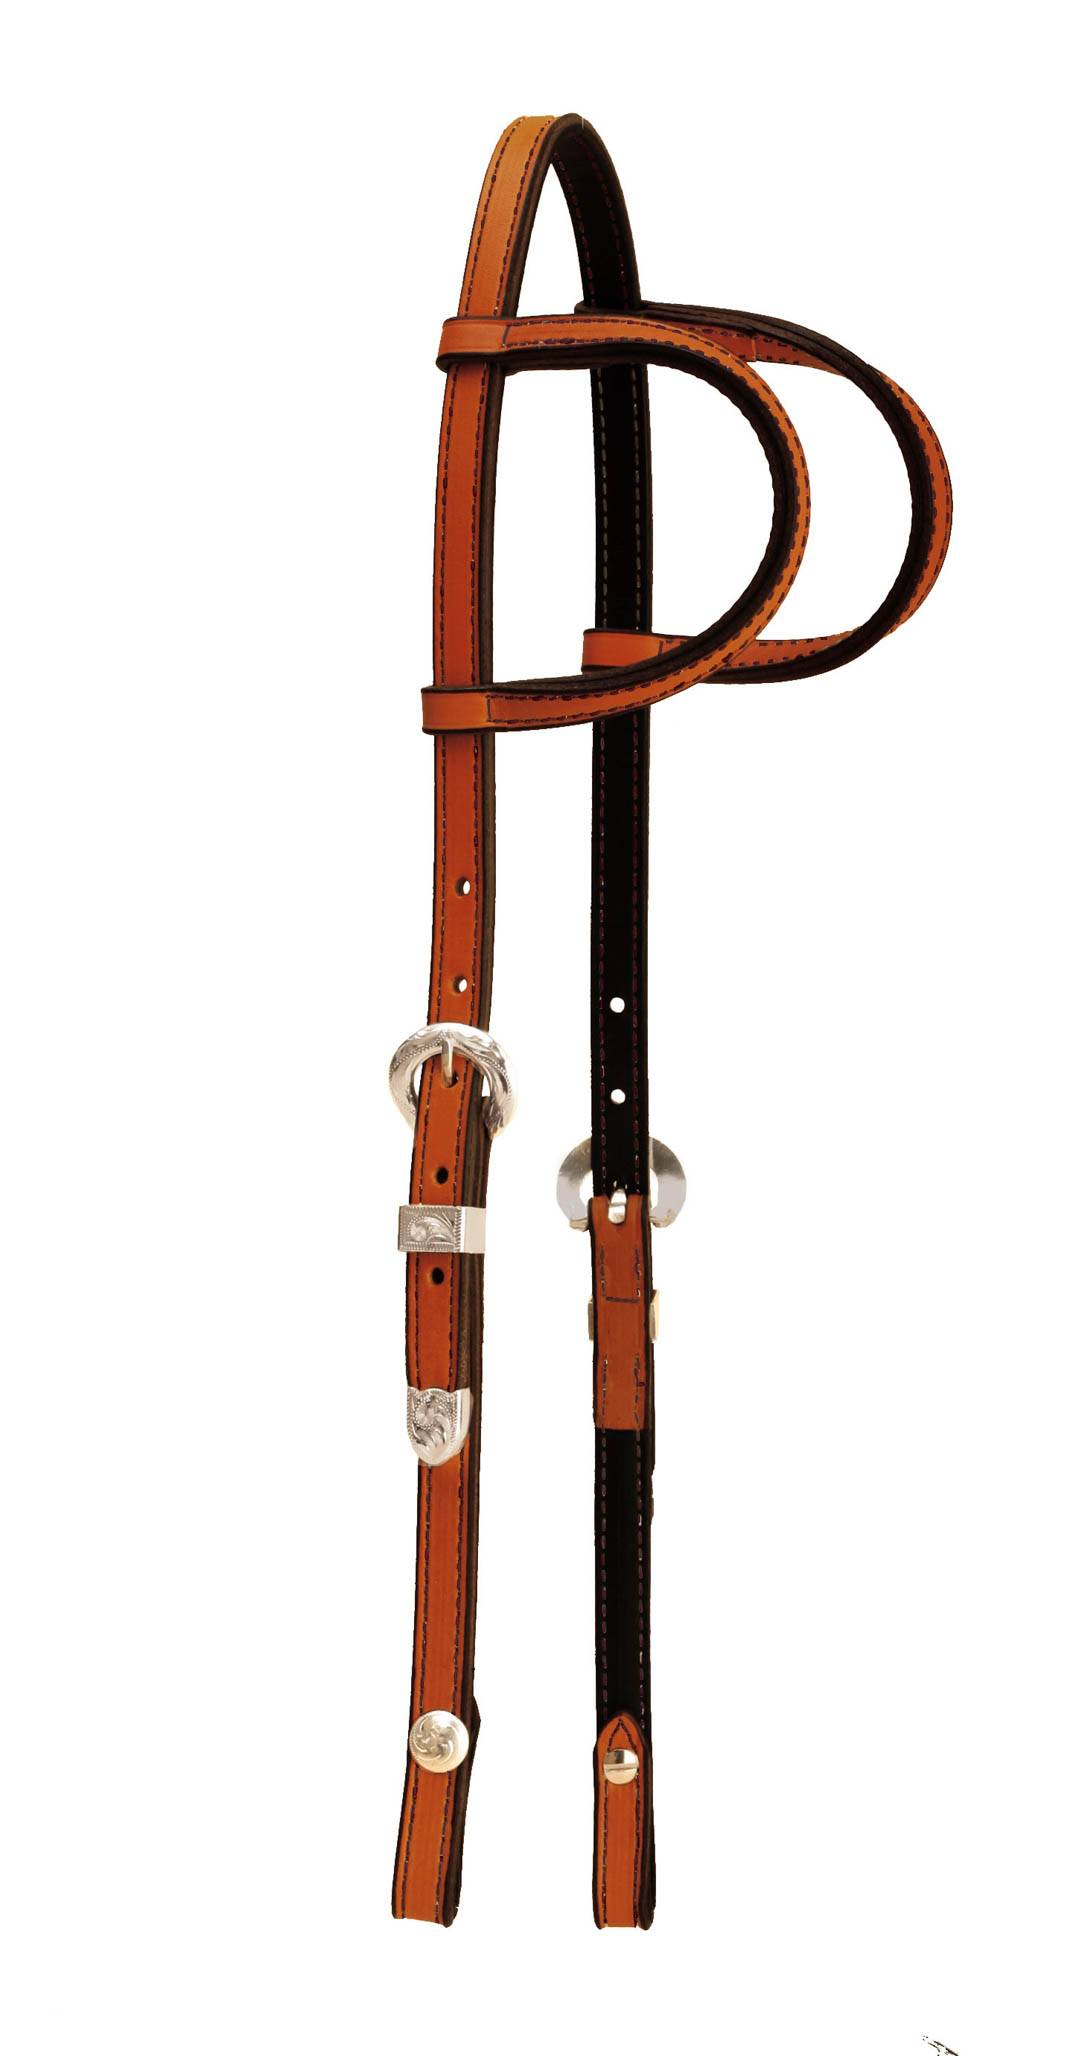 Tory Leather Double Ear Headstall- 3-Piece Silver Buckle Set